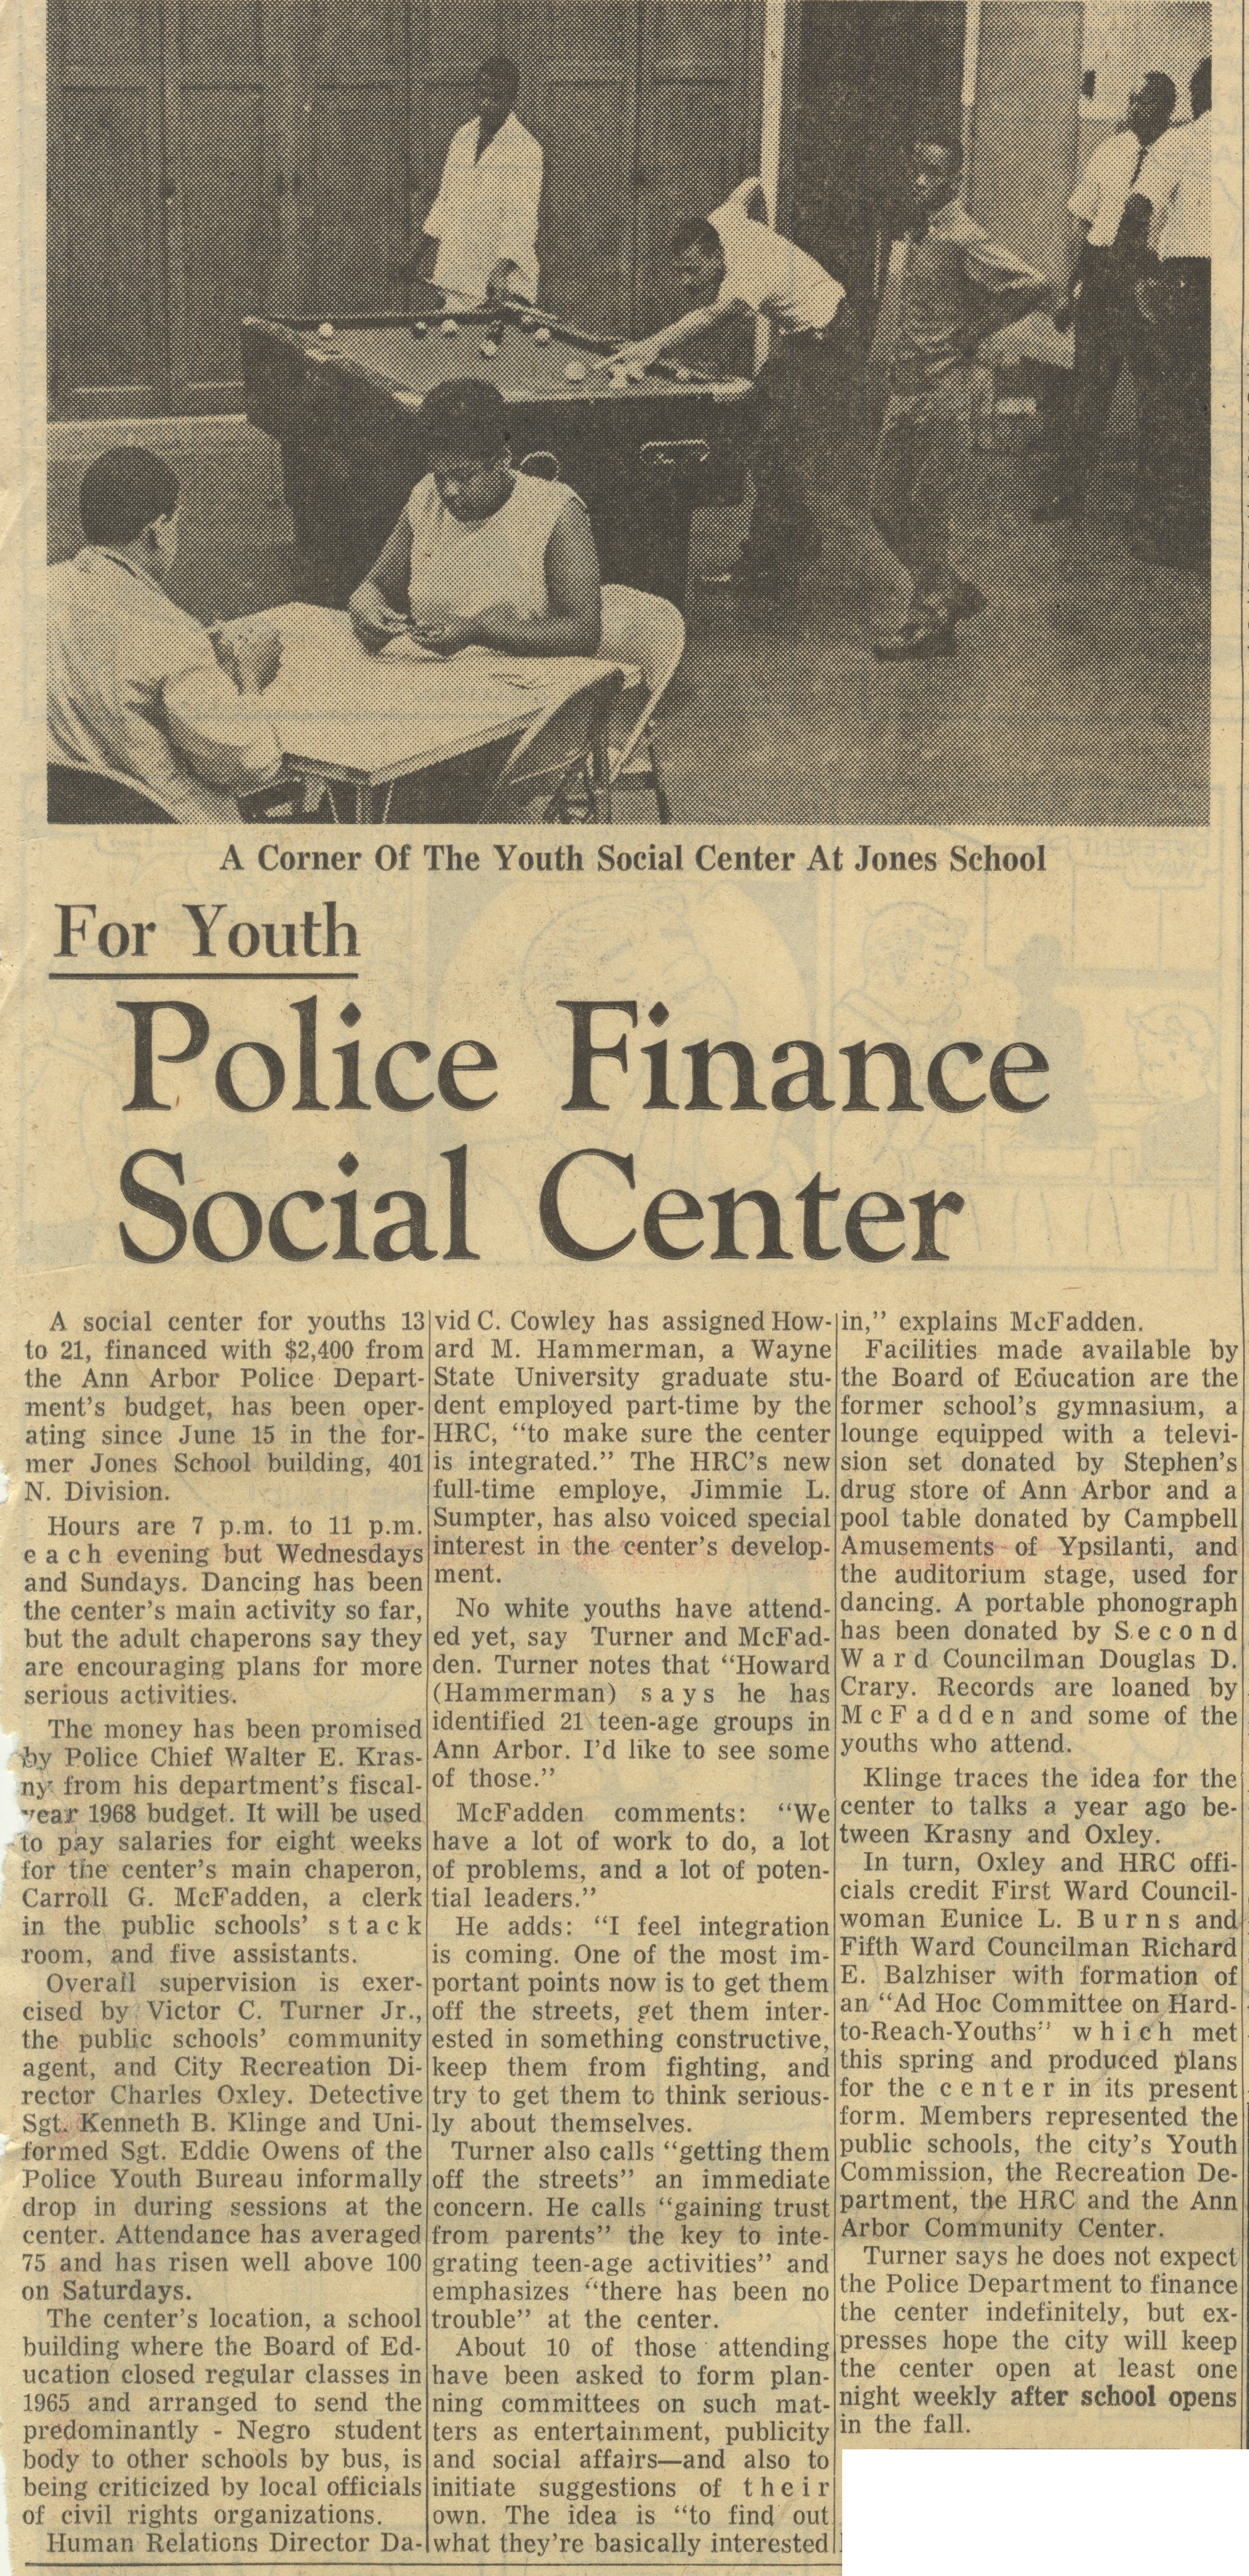 Police Finance Social Center image